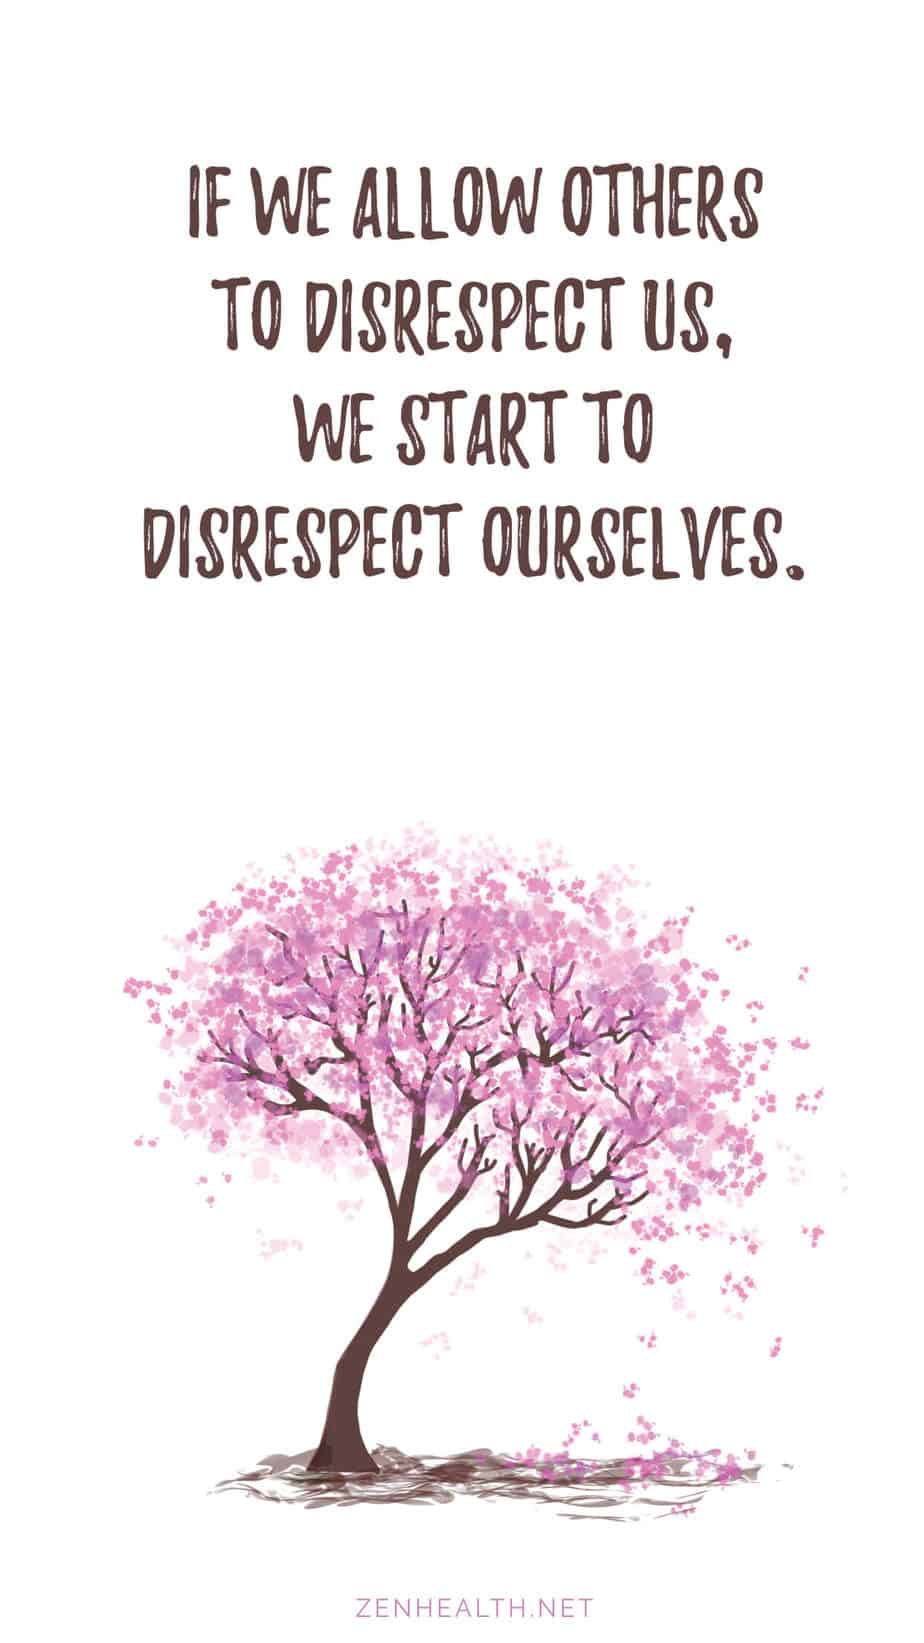 Self-confidence quote: If we allow others to disrespect us, we start to disrespect ourselves.